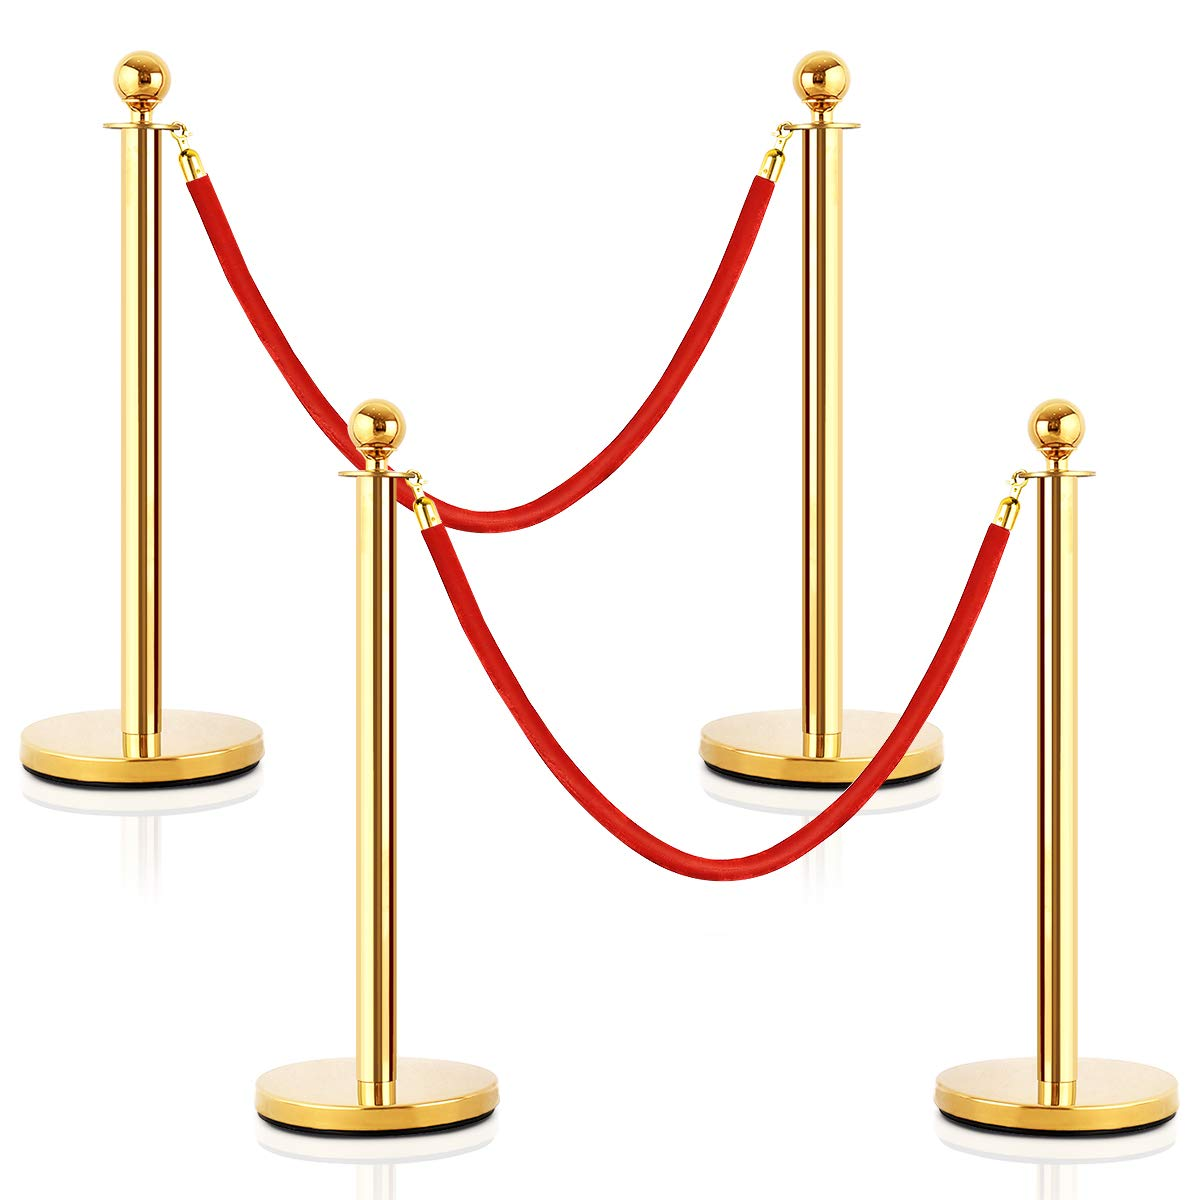 Goplus 4Pcs Stainless Steel Stanchion Posts Queue Pole Retractable 2 Ropes Crowd Control Barrier with 5Ft Red Velvet Rope, Gold by Goplus